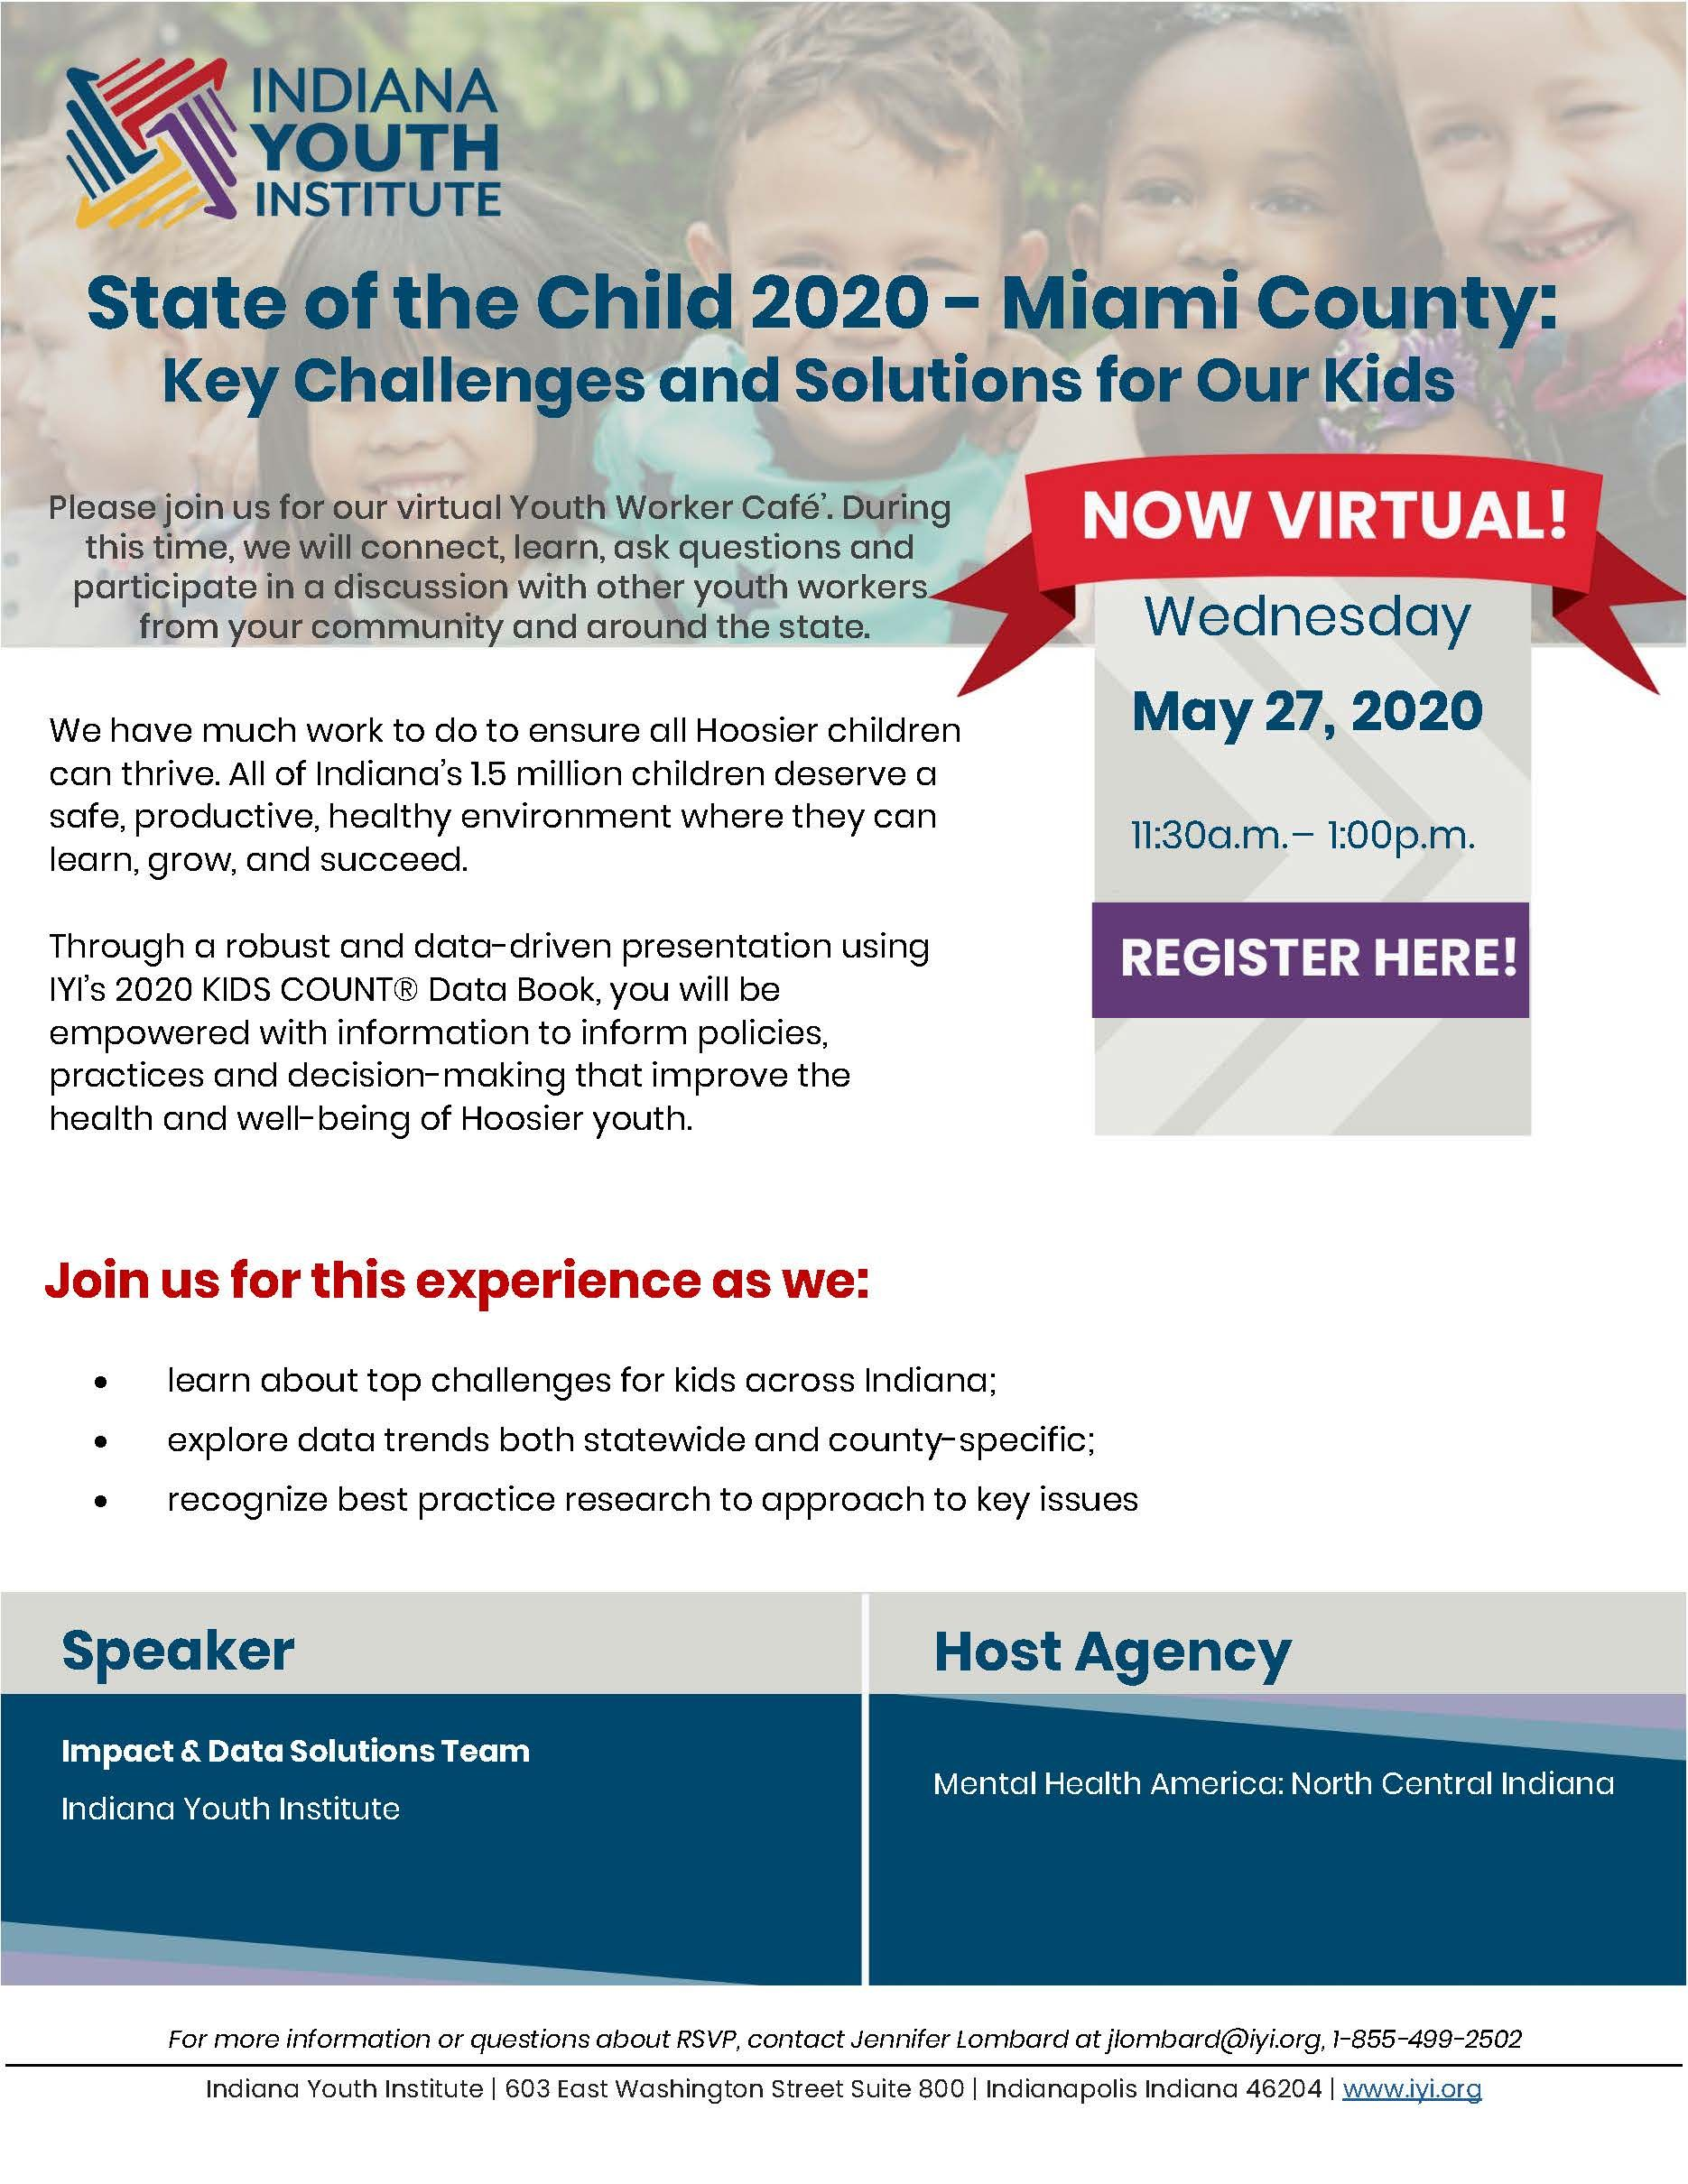 State of the Child - Miami County